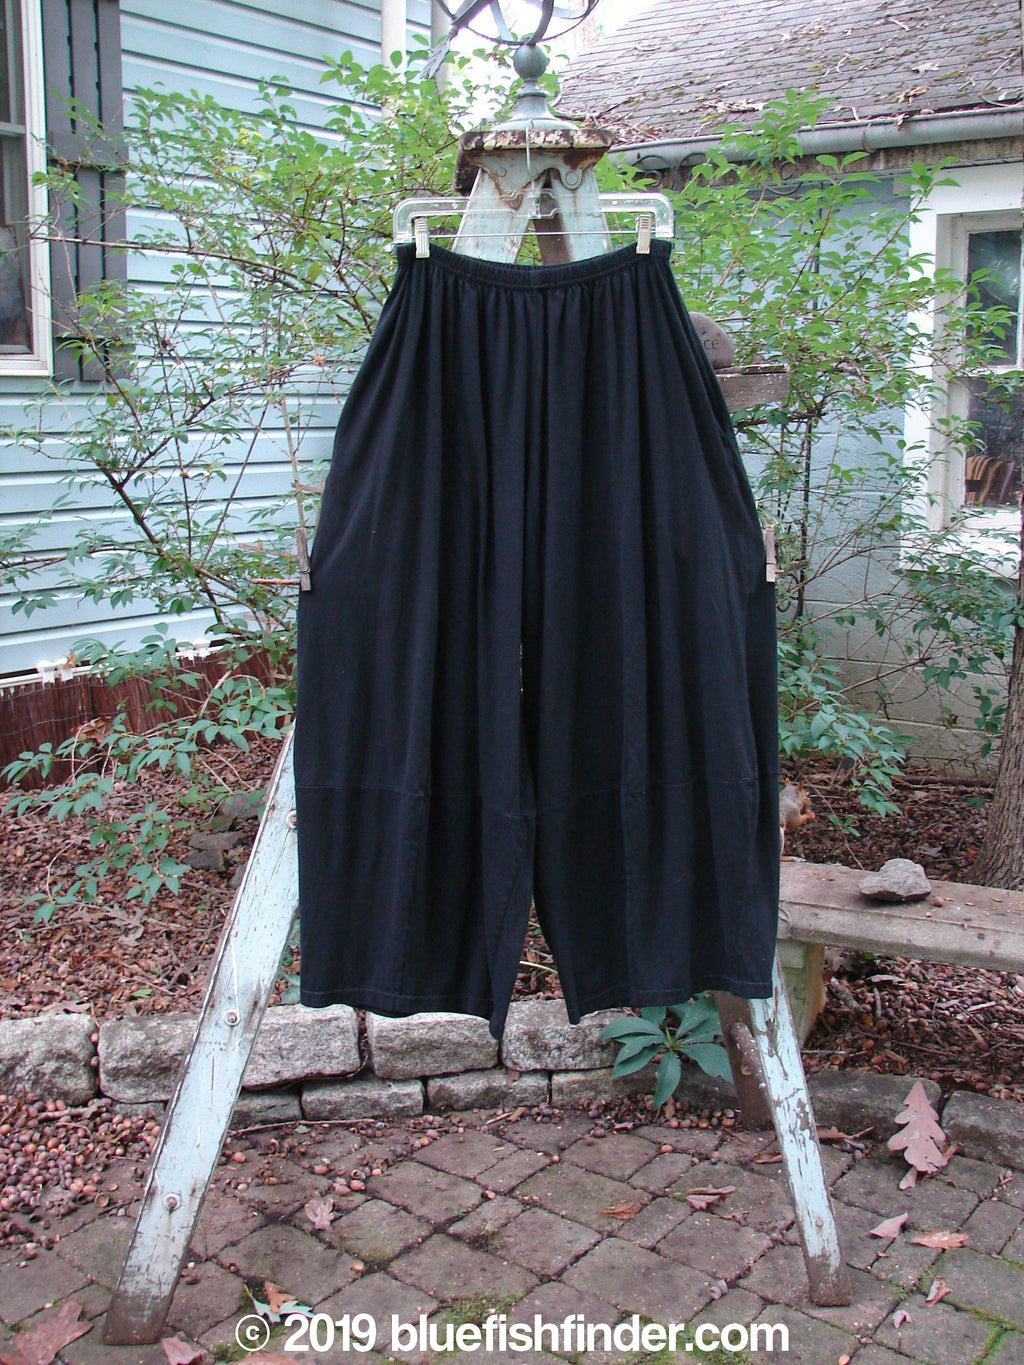 Vintage Blue Fish Clothing Barclay 4 Square Pant Black Size 1- Bluefishfinder.com